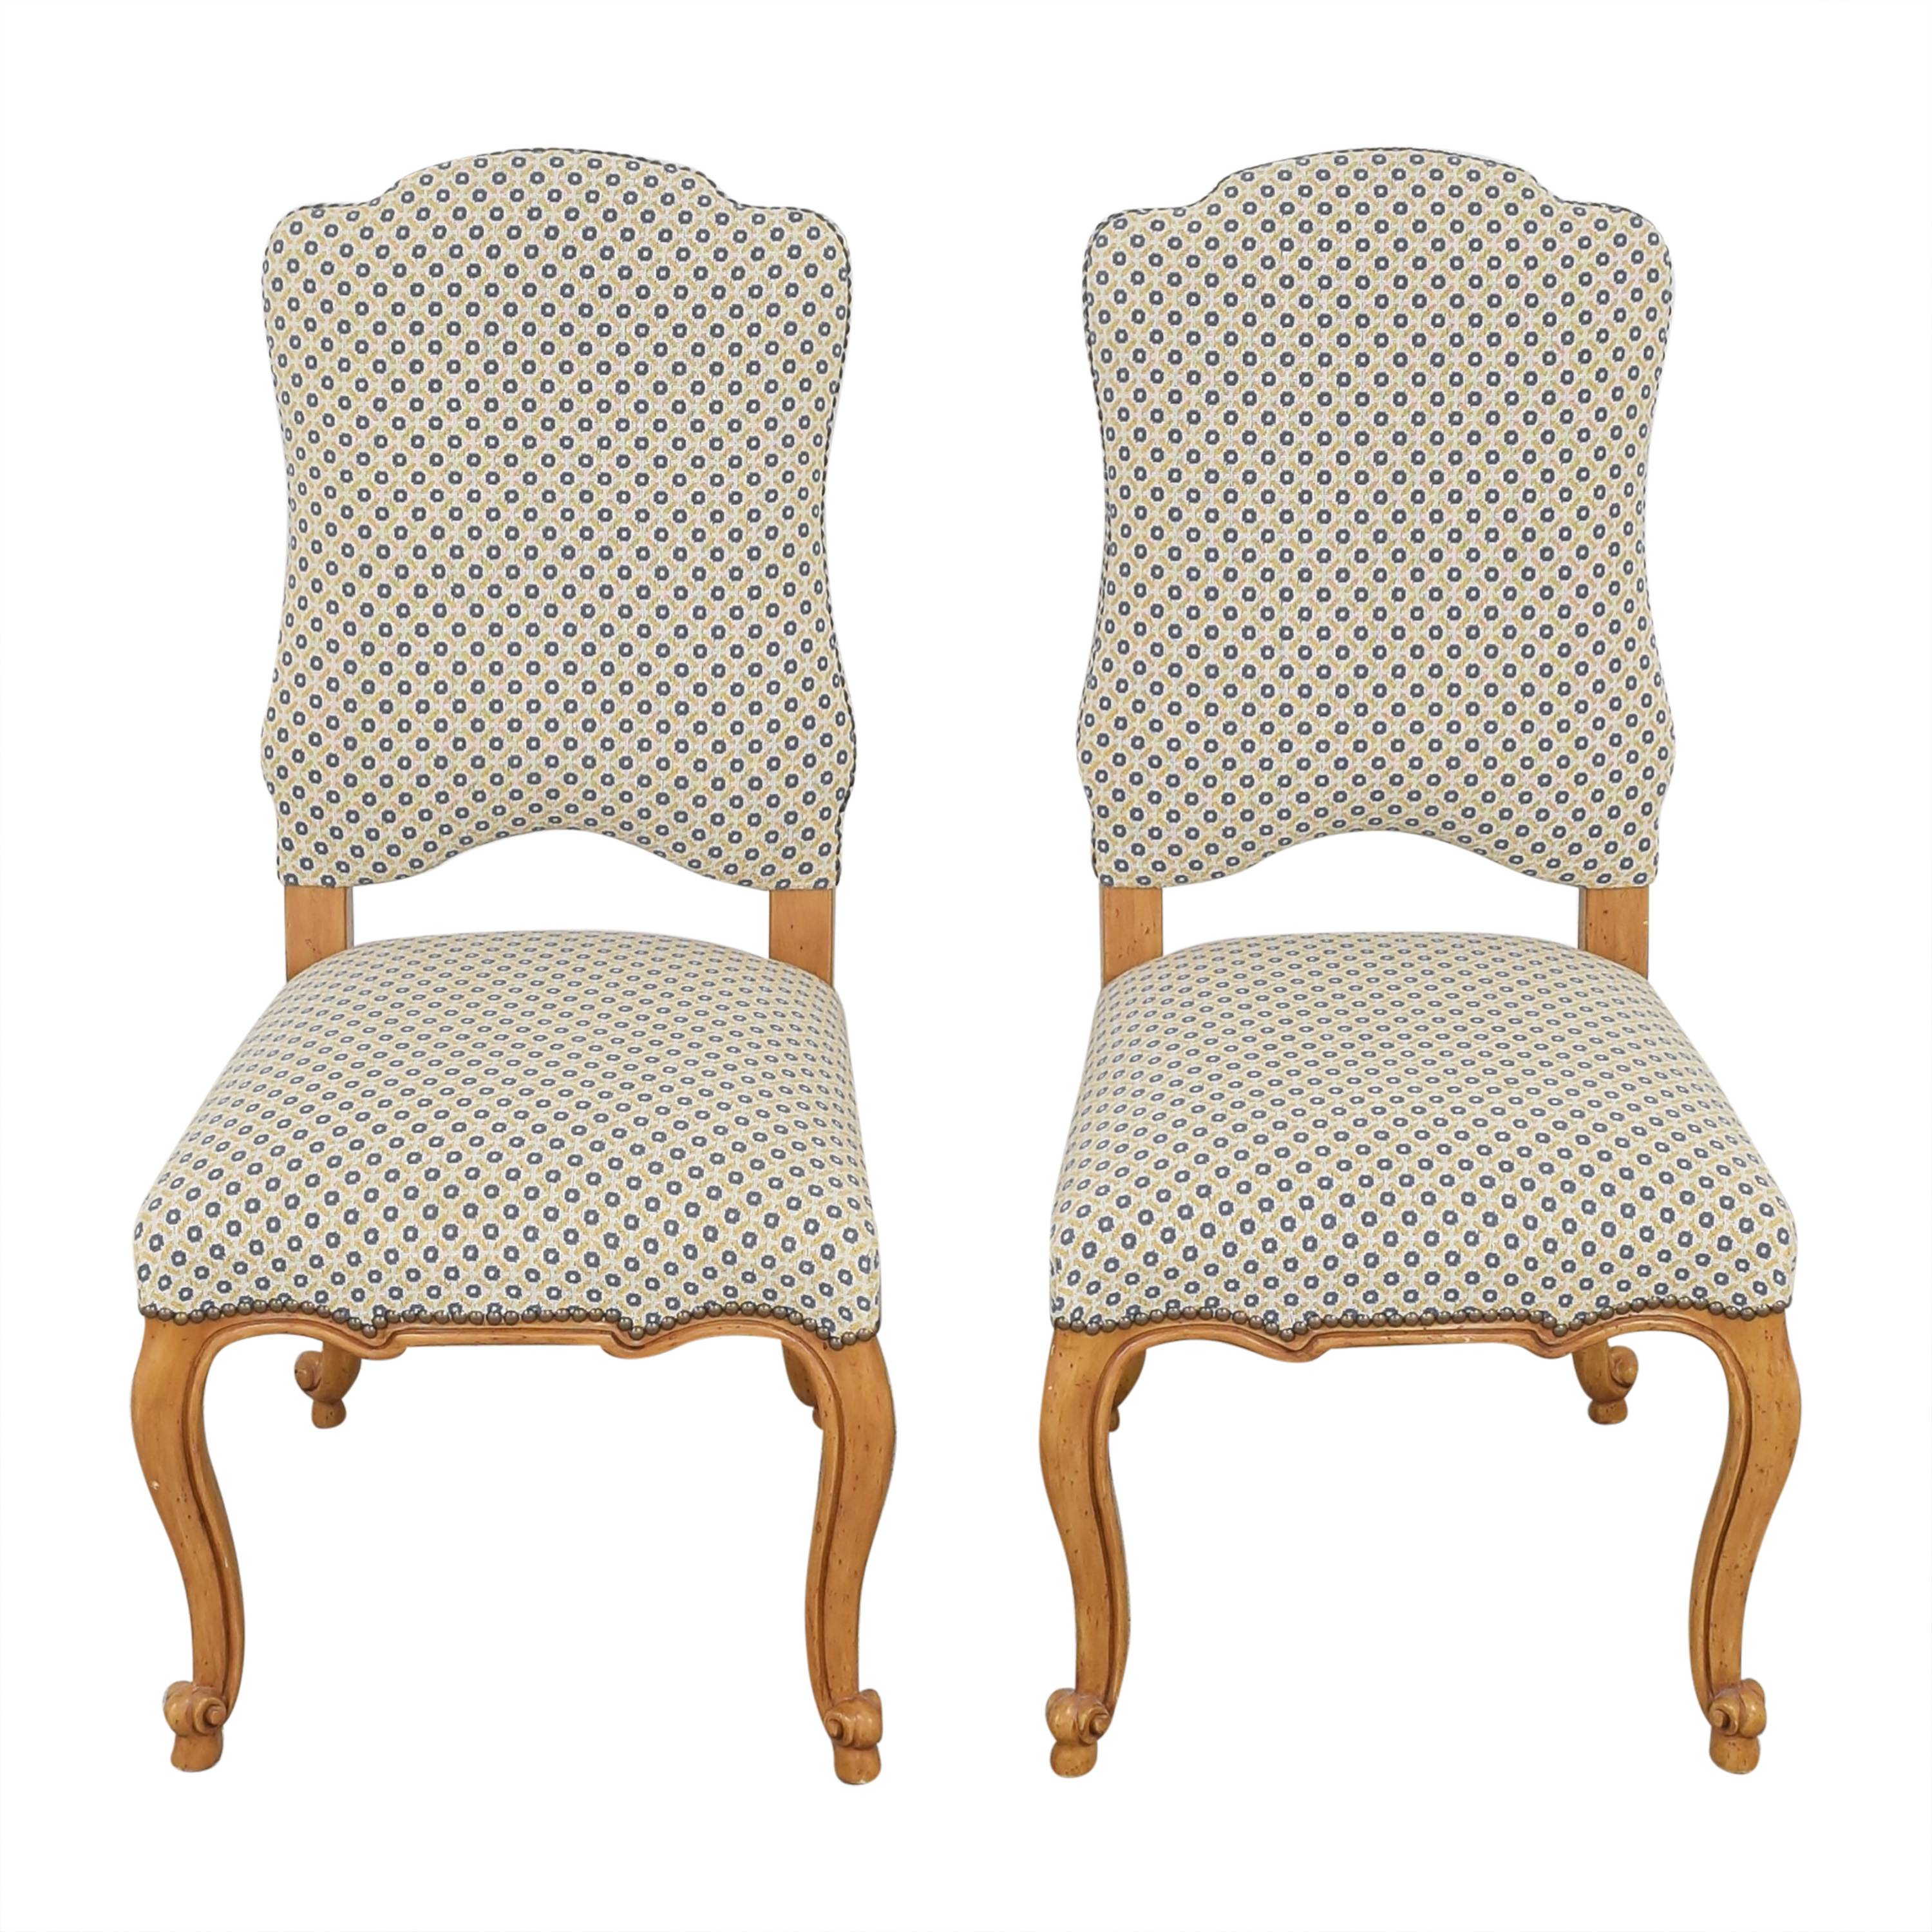 Minton-Spidell Minton-Spidell Regence Dining Side Chairs dimensions